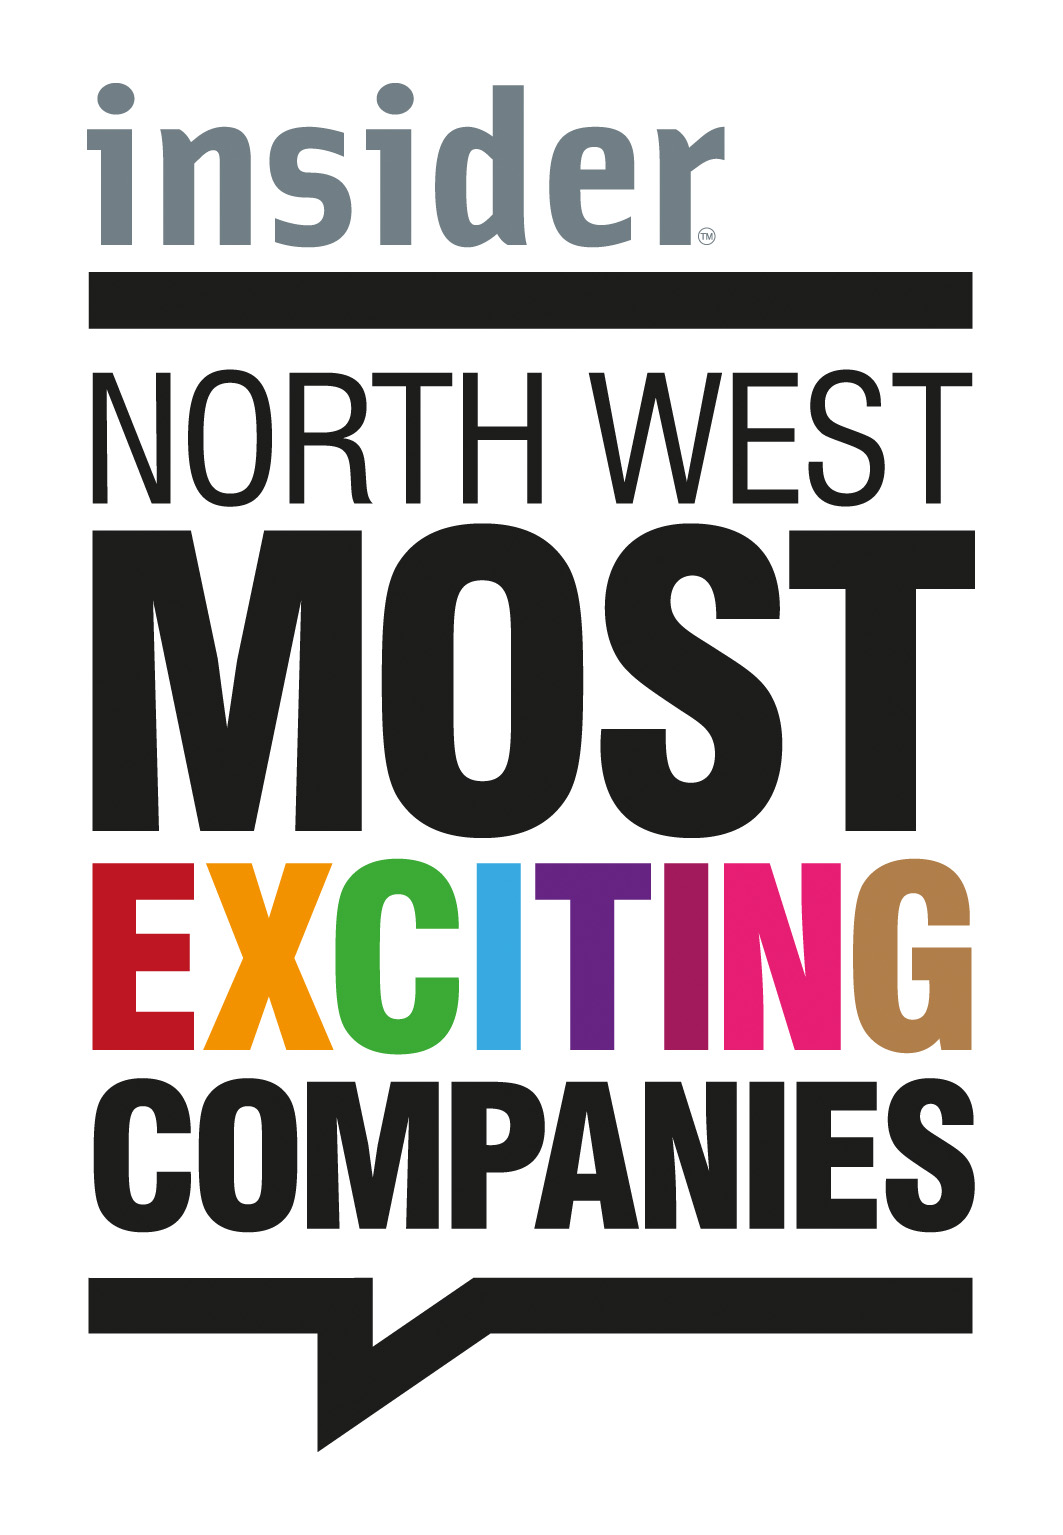 ParkCloud named one of the North West's Most Exciting Companies!